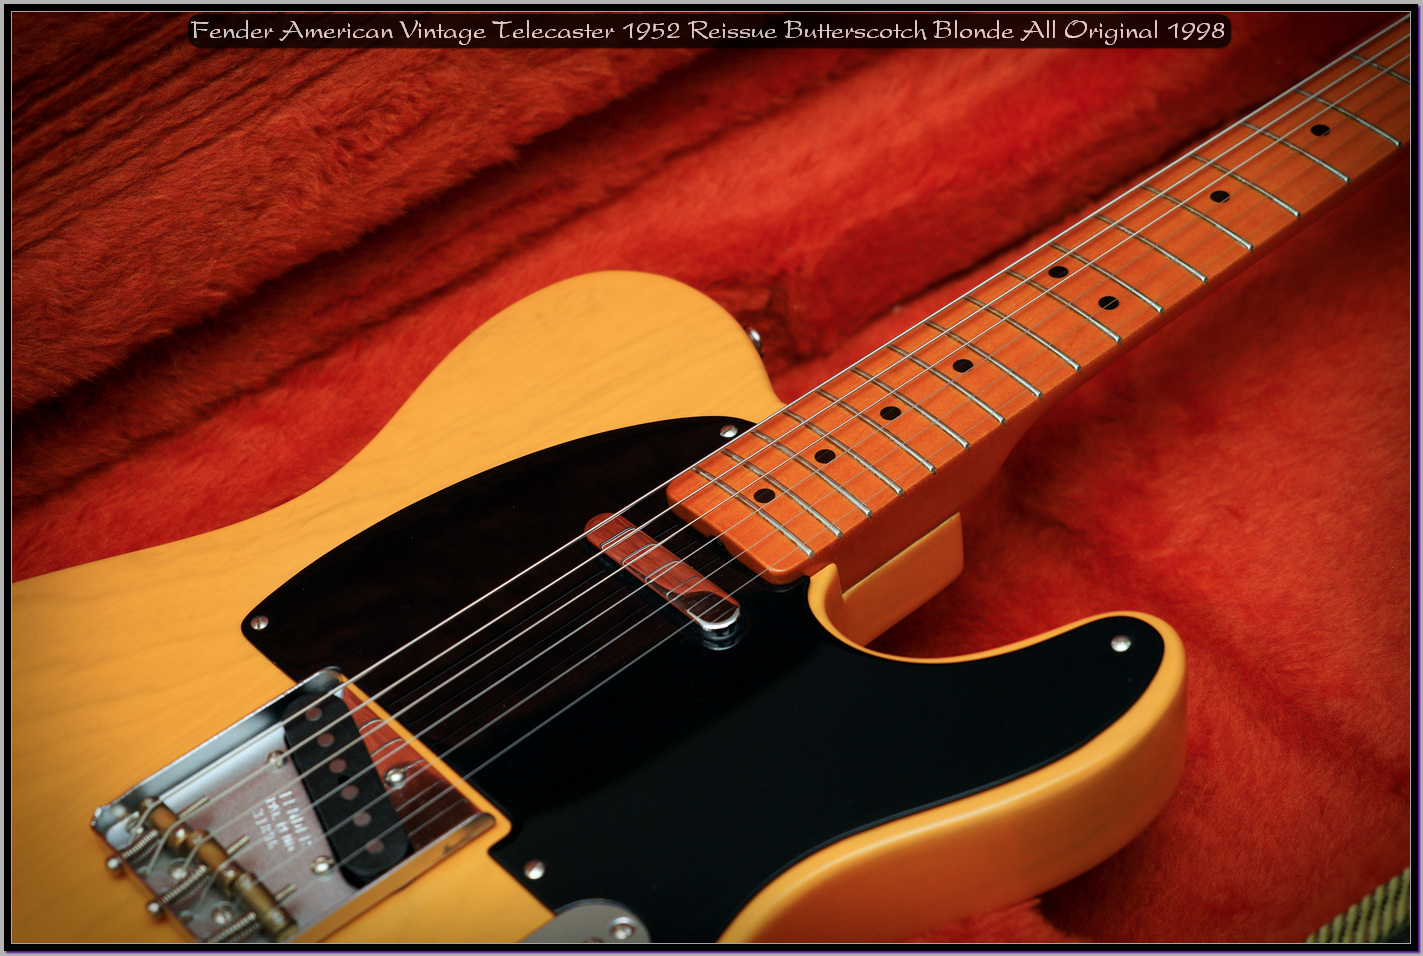 Fender American Vintage Telecaster 1952 Reissue Butterscotch Blonde All Original 1998 17_x1440.jpg